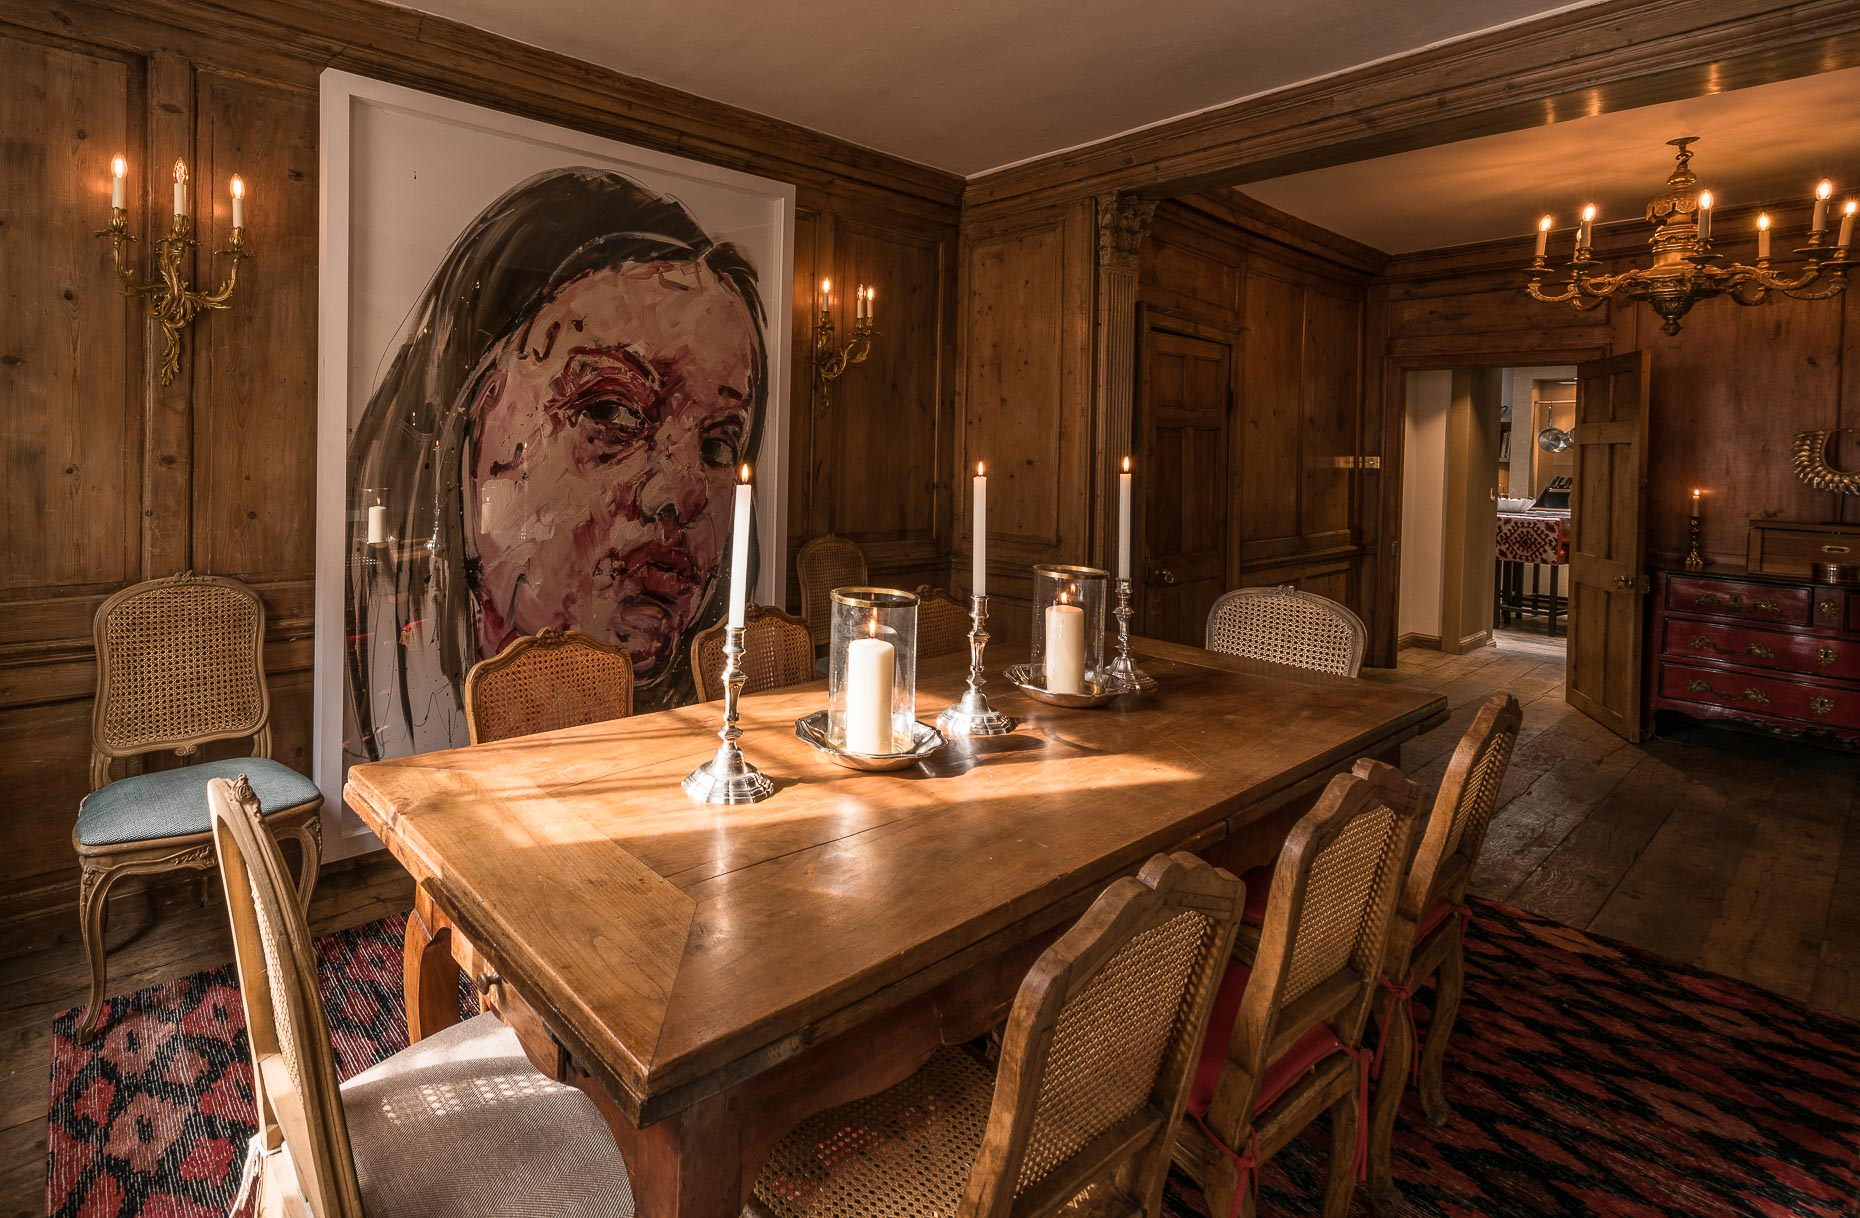 eclectic-interior-dining-room-design-wooden-panels-chelsea-london-photographer-06